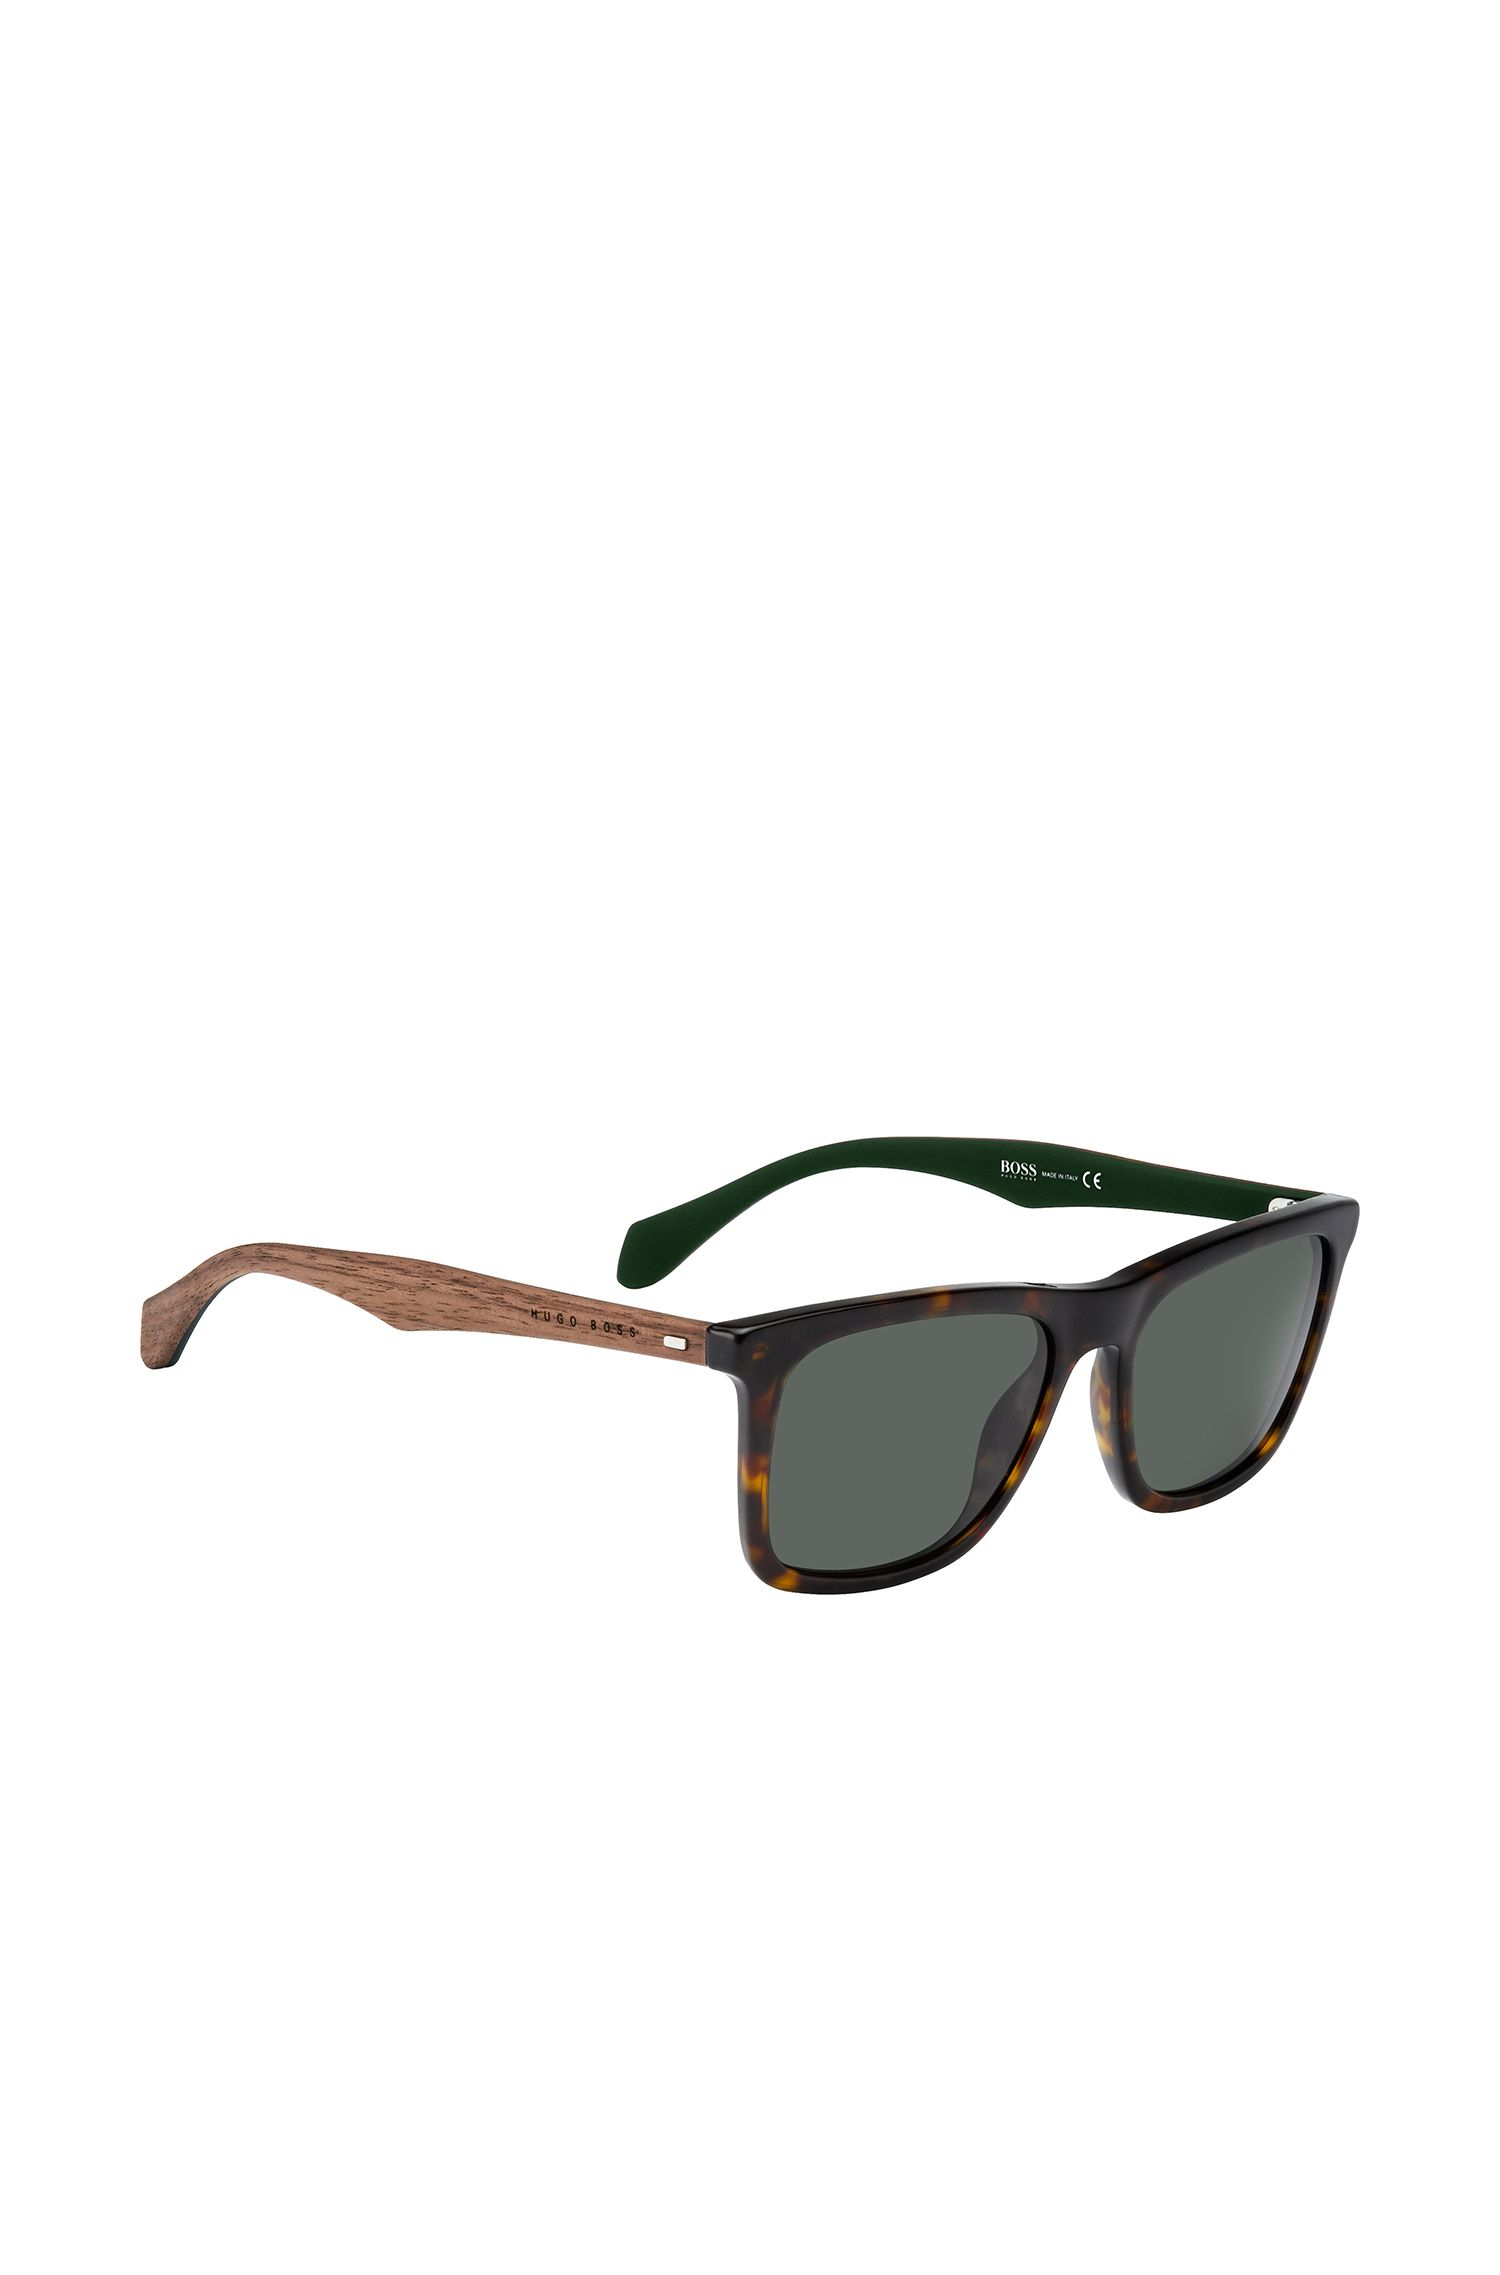 Gray Green Lens Walnut Sunglasses | BOSS 0776S